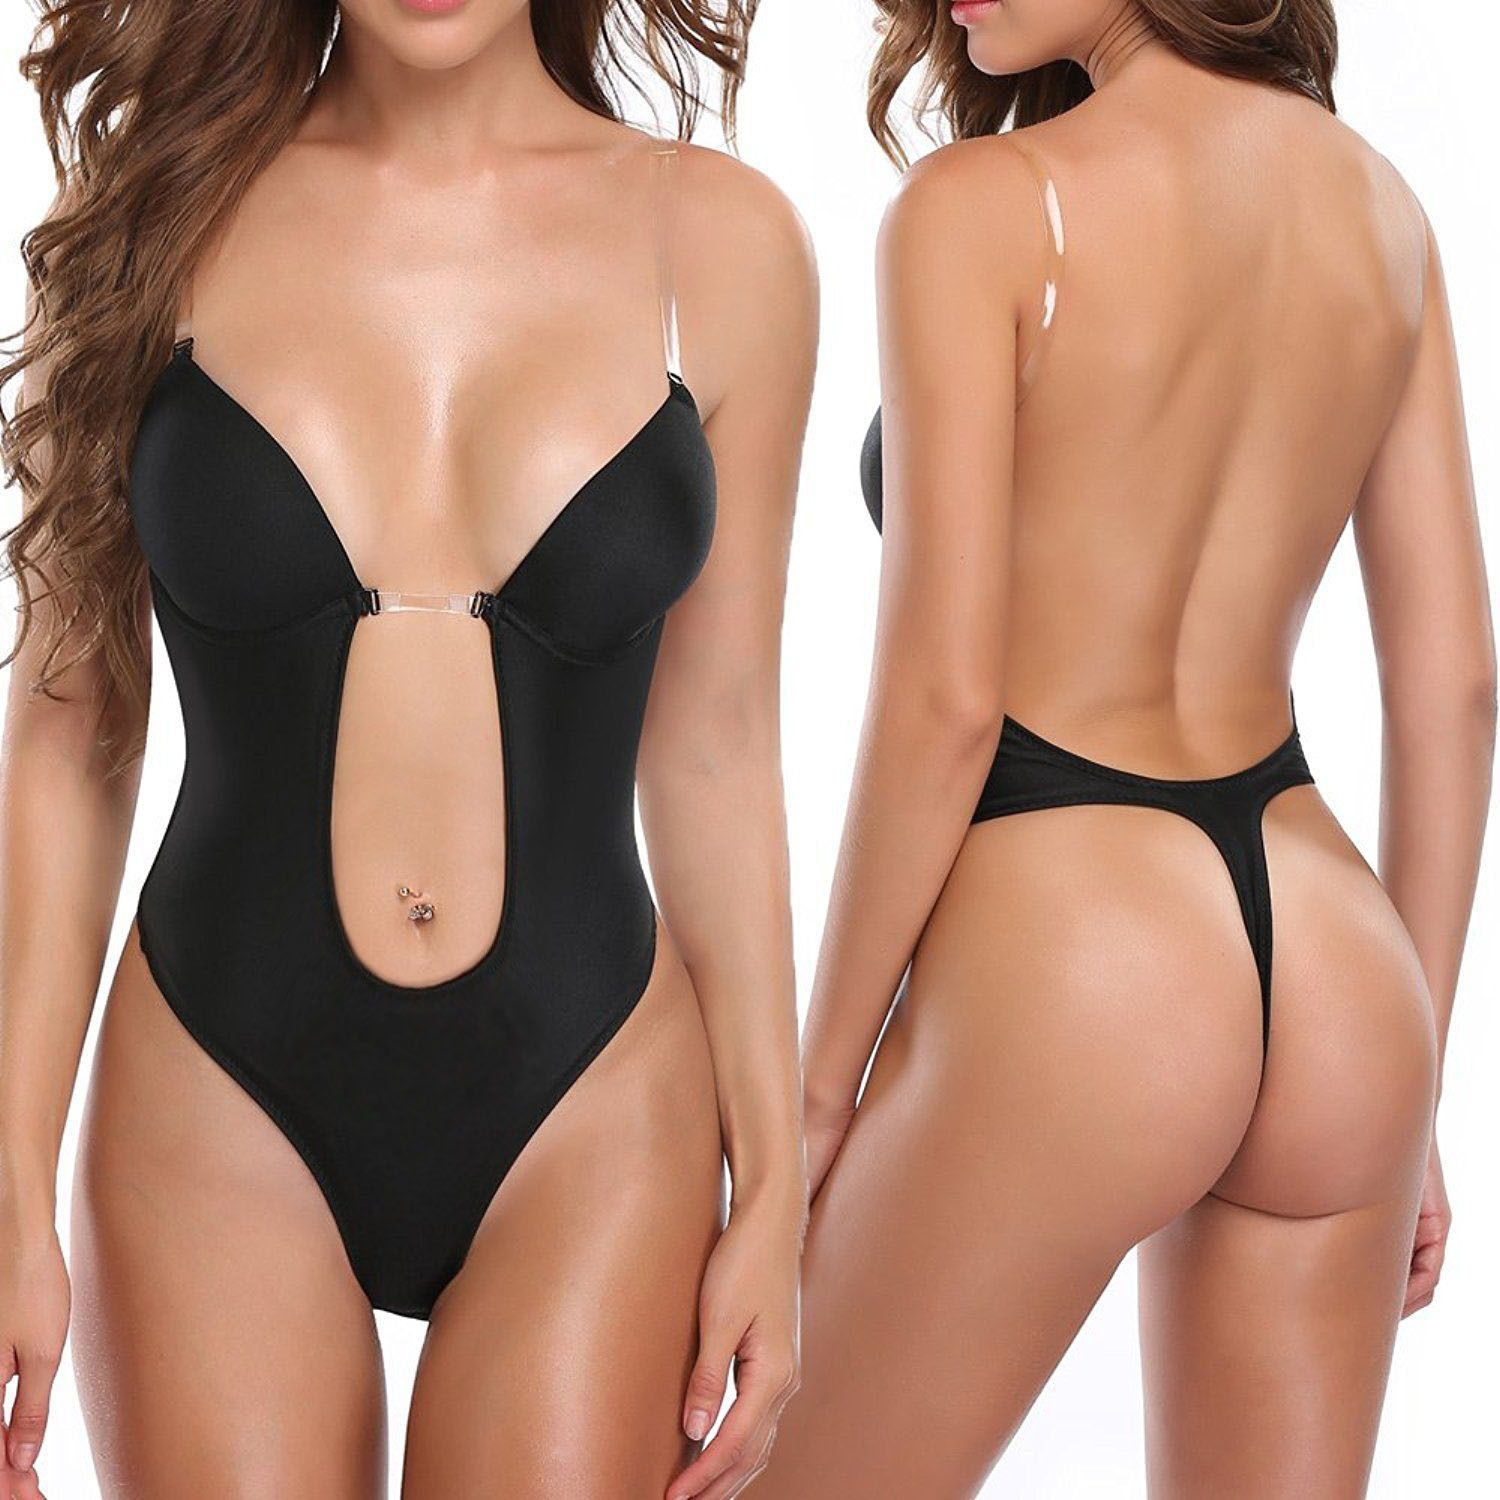 2f77c66cb Backless Bra Full Body Shaper Thong Convertible Seamless Low Back Max  Cleavage